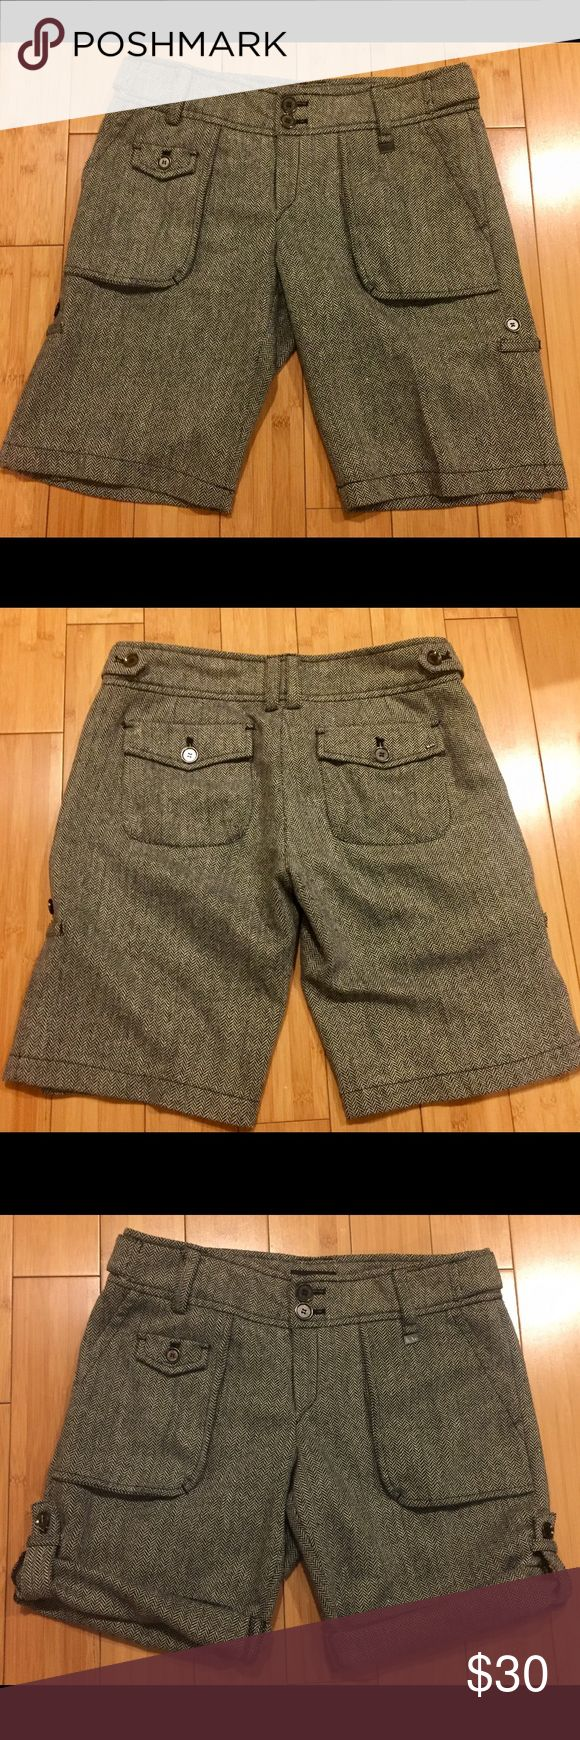 """Mango wool tweed dress shorts sz 10 Mango wool shorts to dress up or down! Lots of pockets and details. They can be worn long at 12"""" inseam or rolled and buttoned up to 8"""" inseam. Perfect for fall with boots or winter with tights. Mango Shorts"""